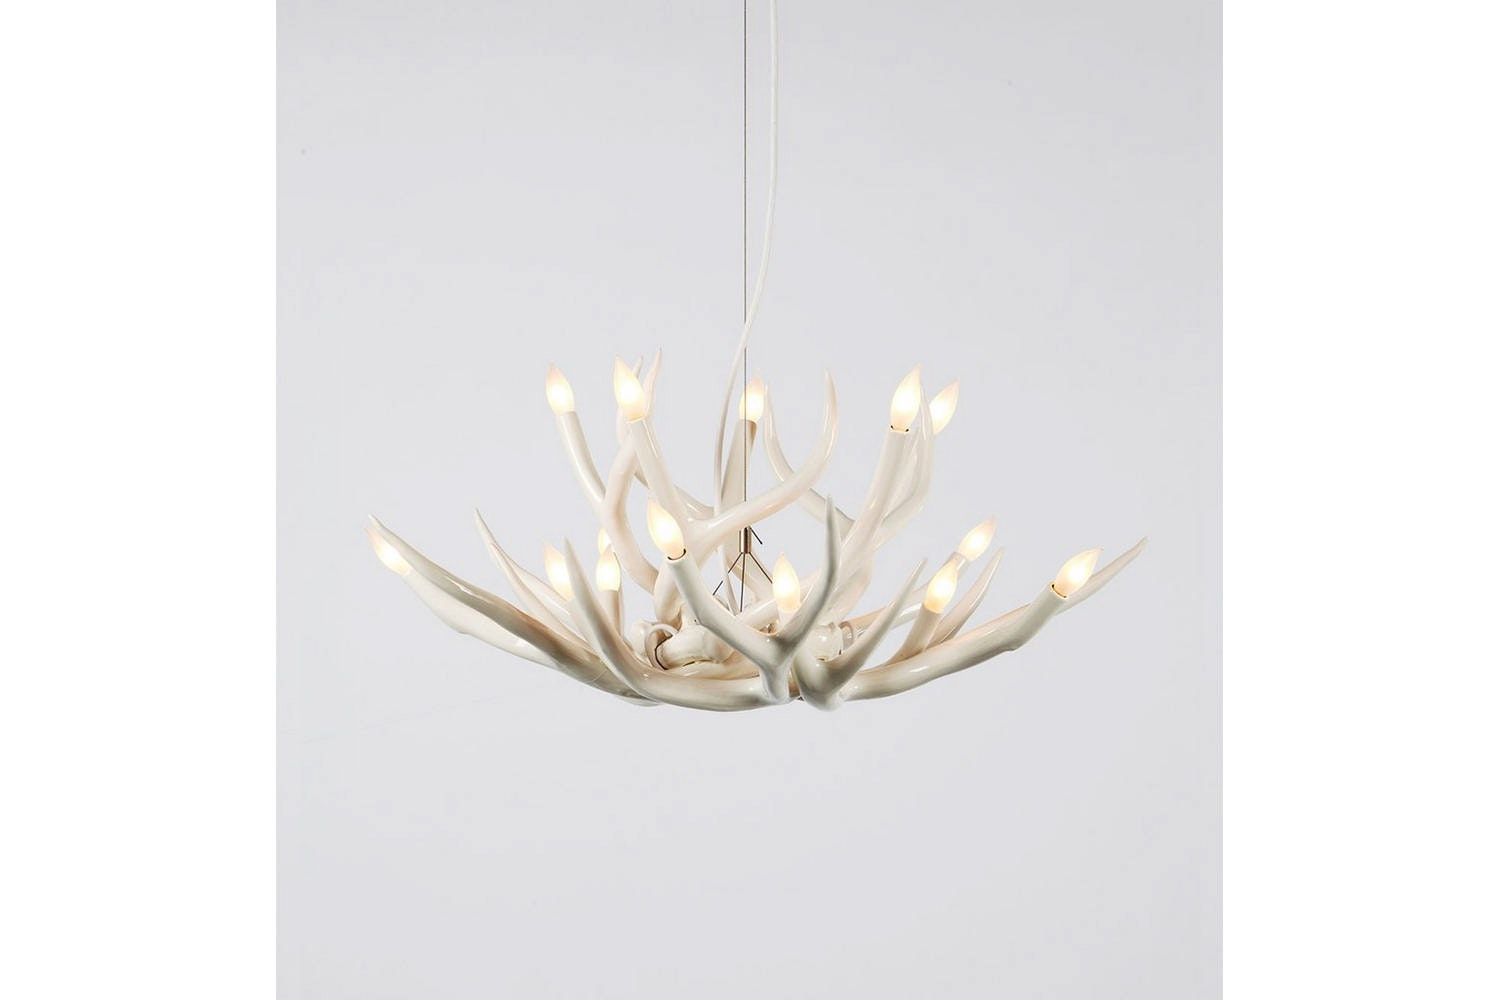 Superordinate Antler Chandelier - 10 Antlers by Jason Miller for Roll & Hill